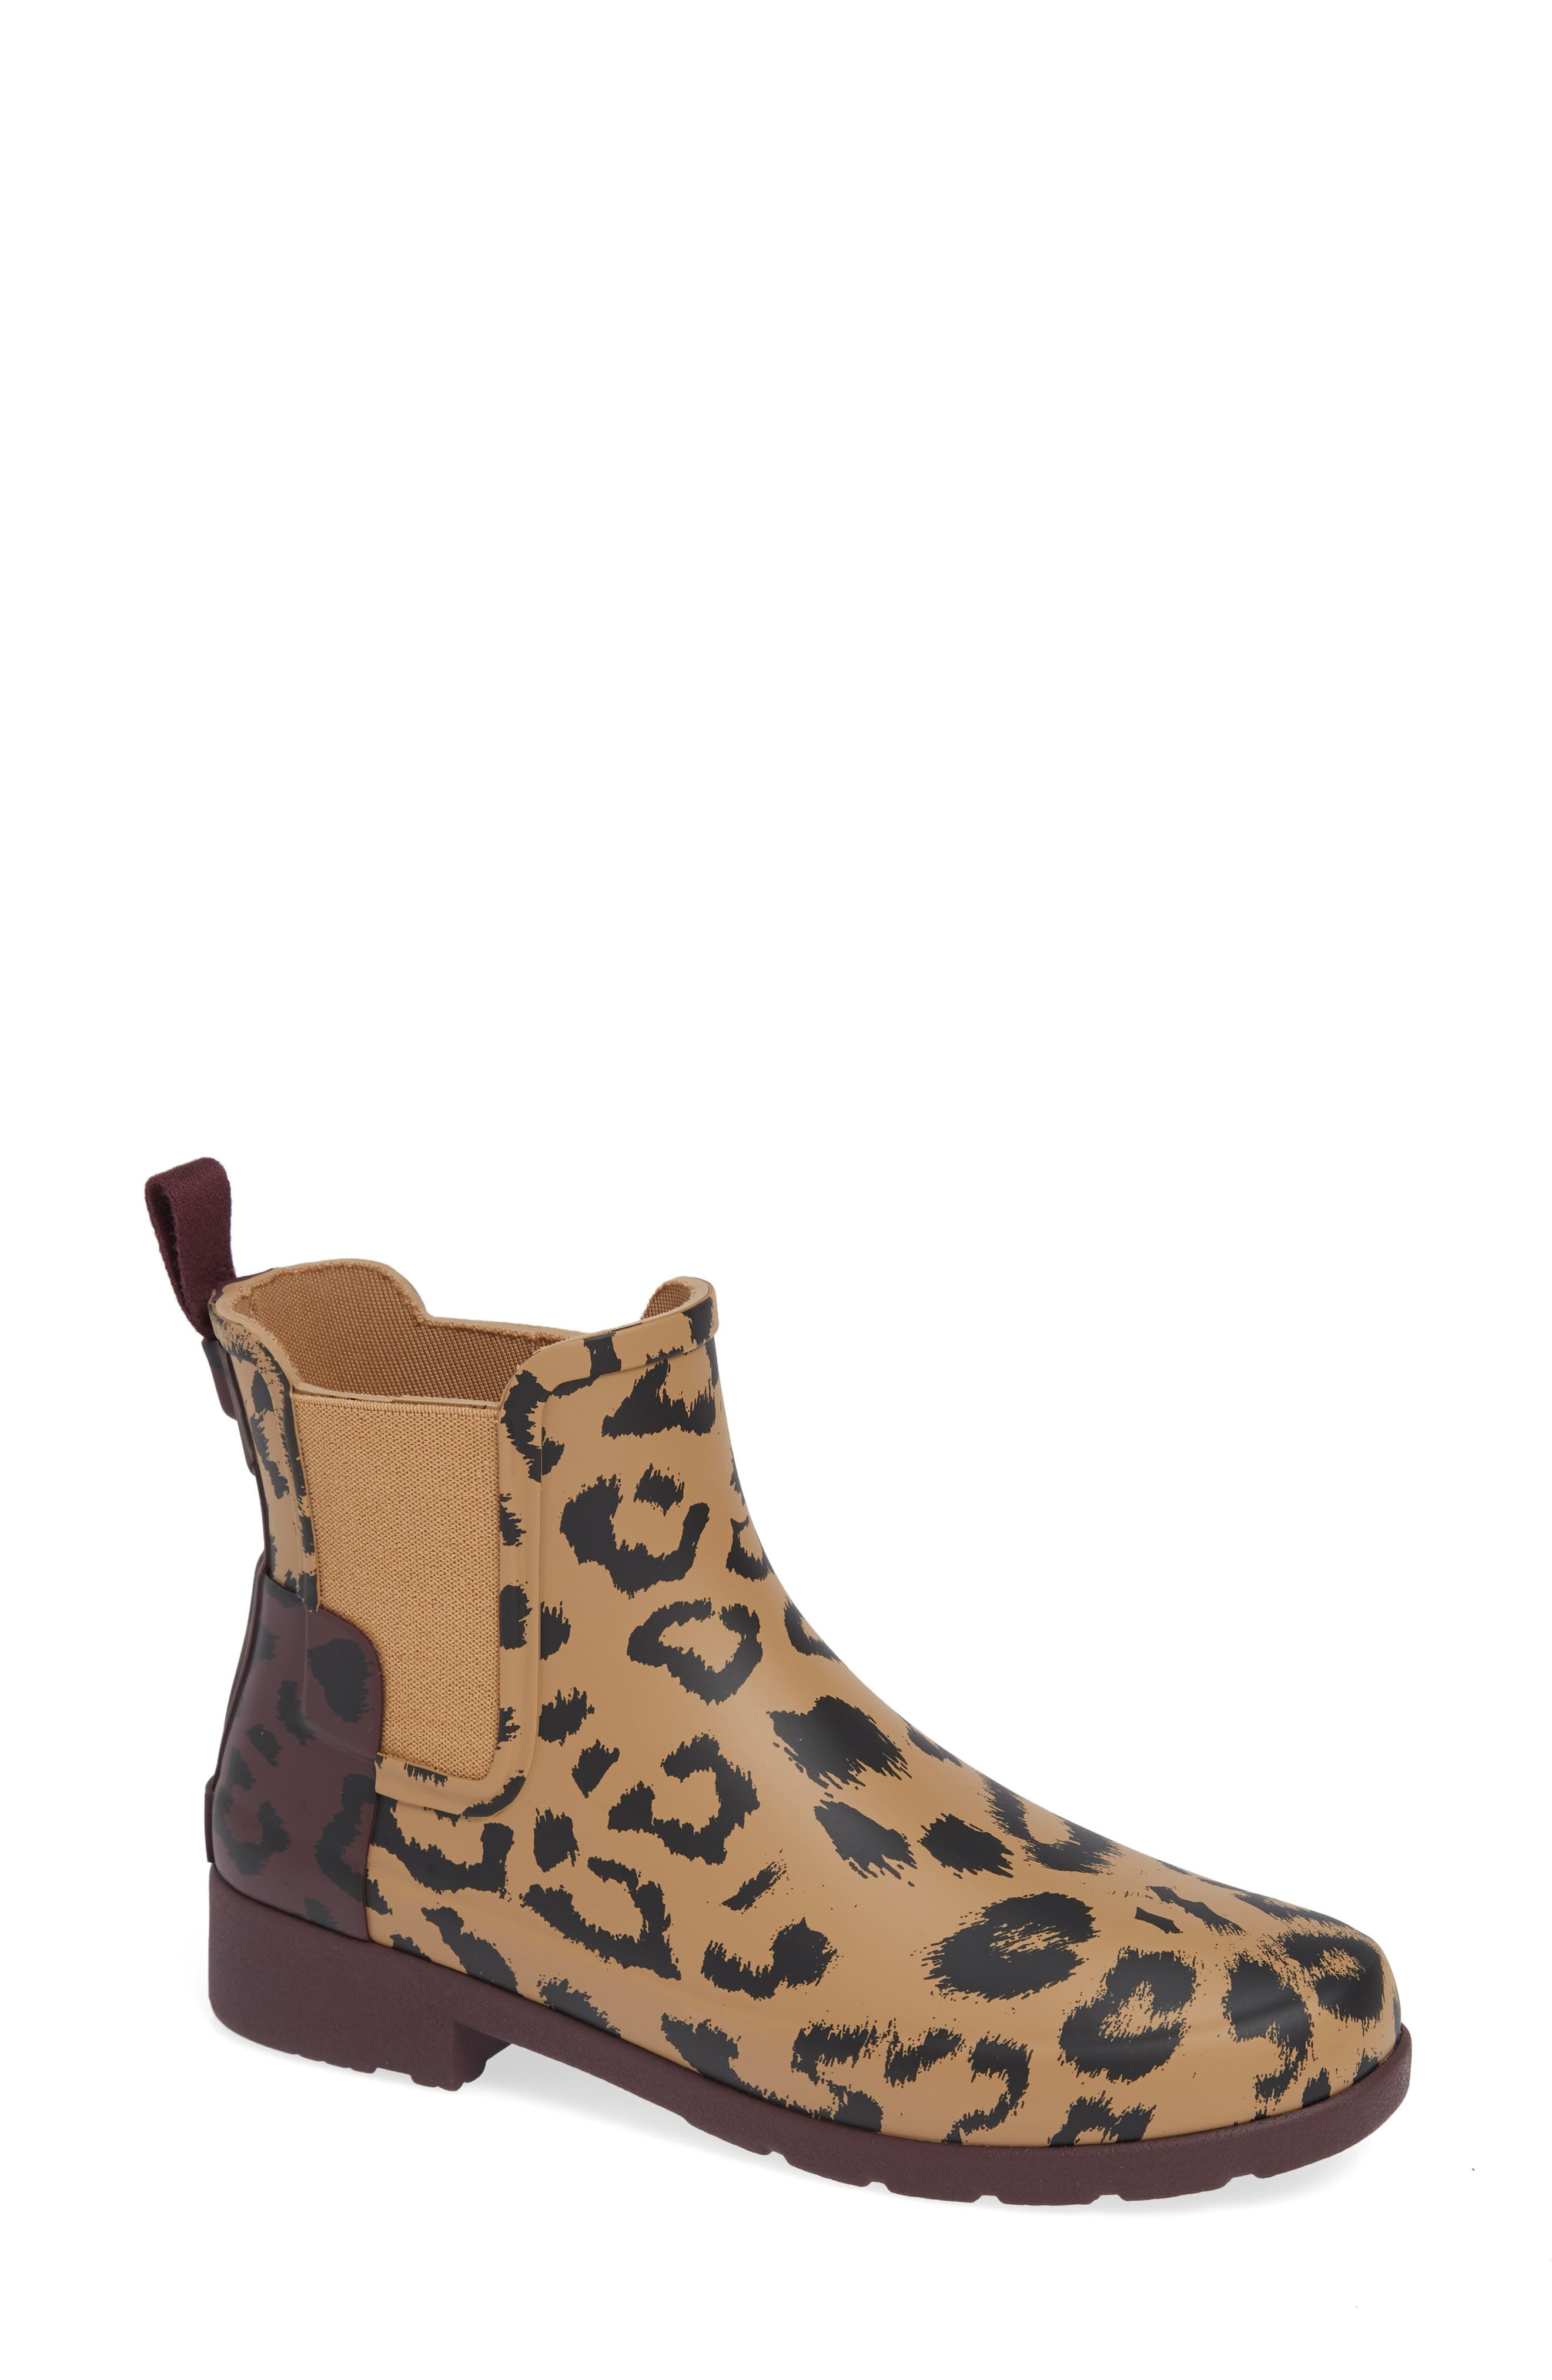 HUNTER Original Leopard Print Refined Chelsea Waterproof Rain Boot, Main, color, 242